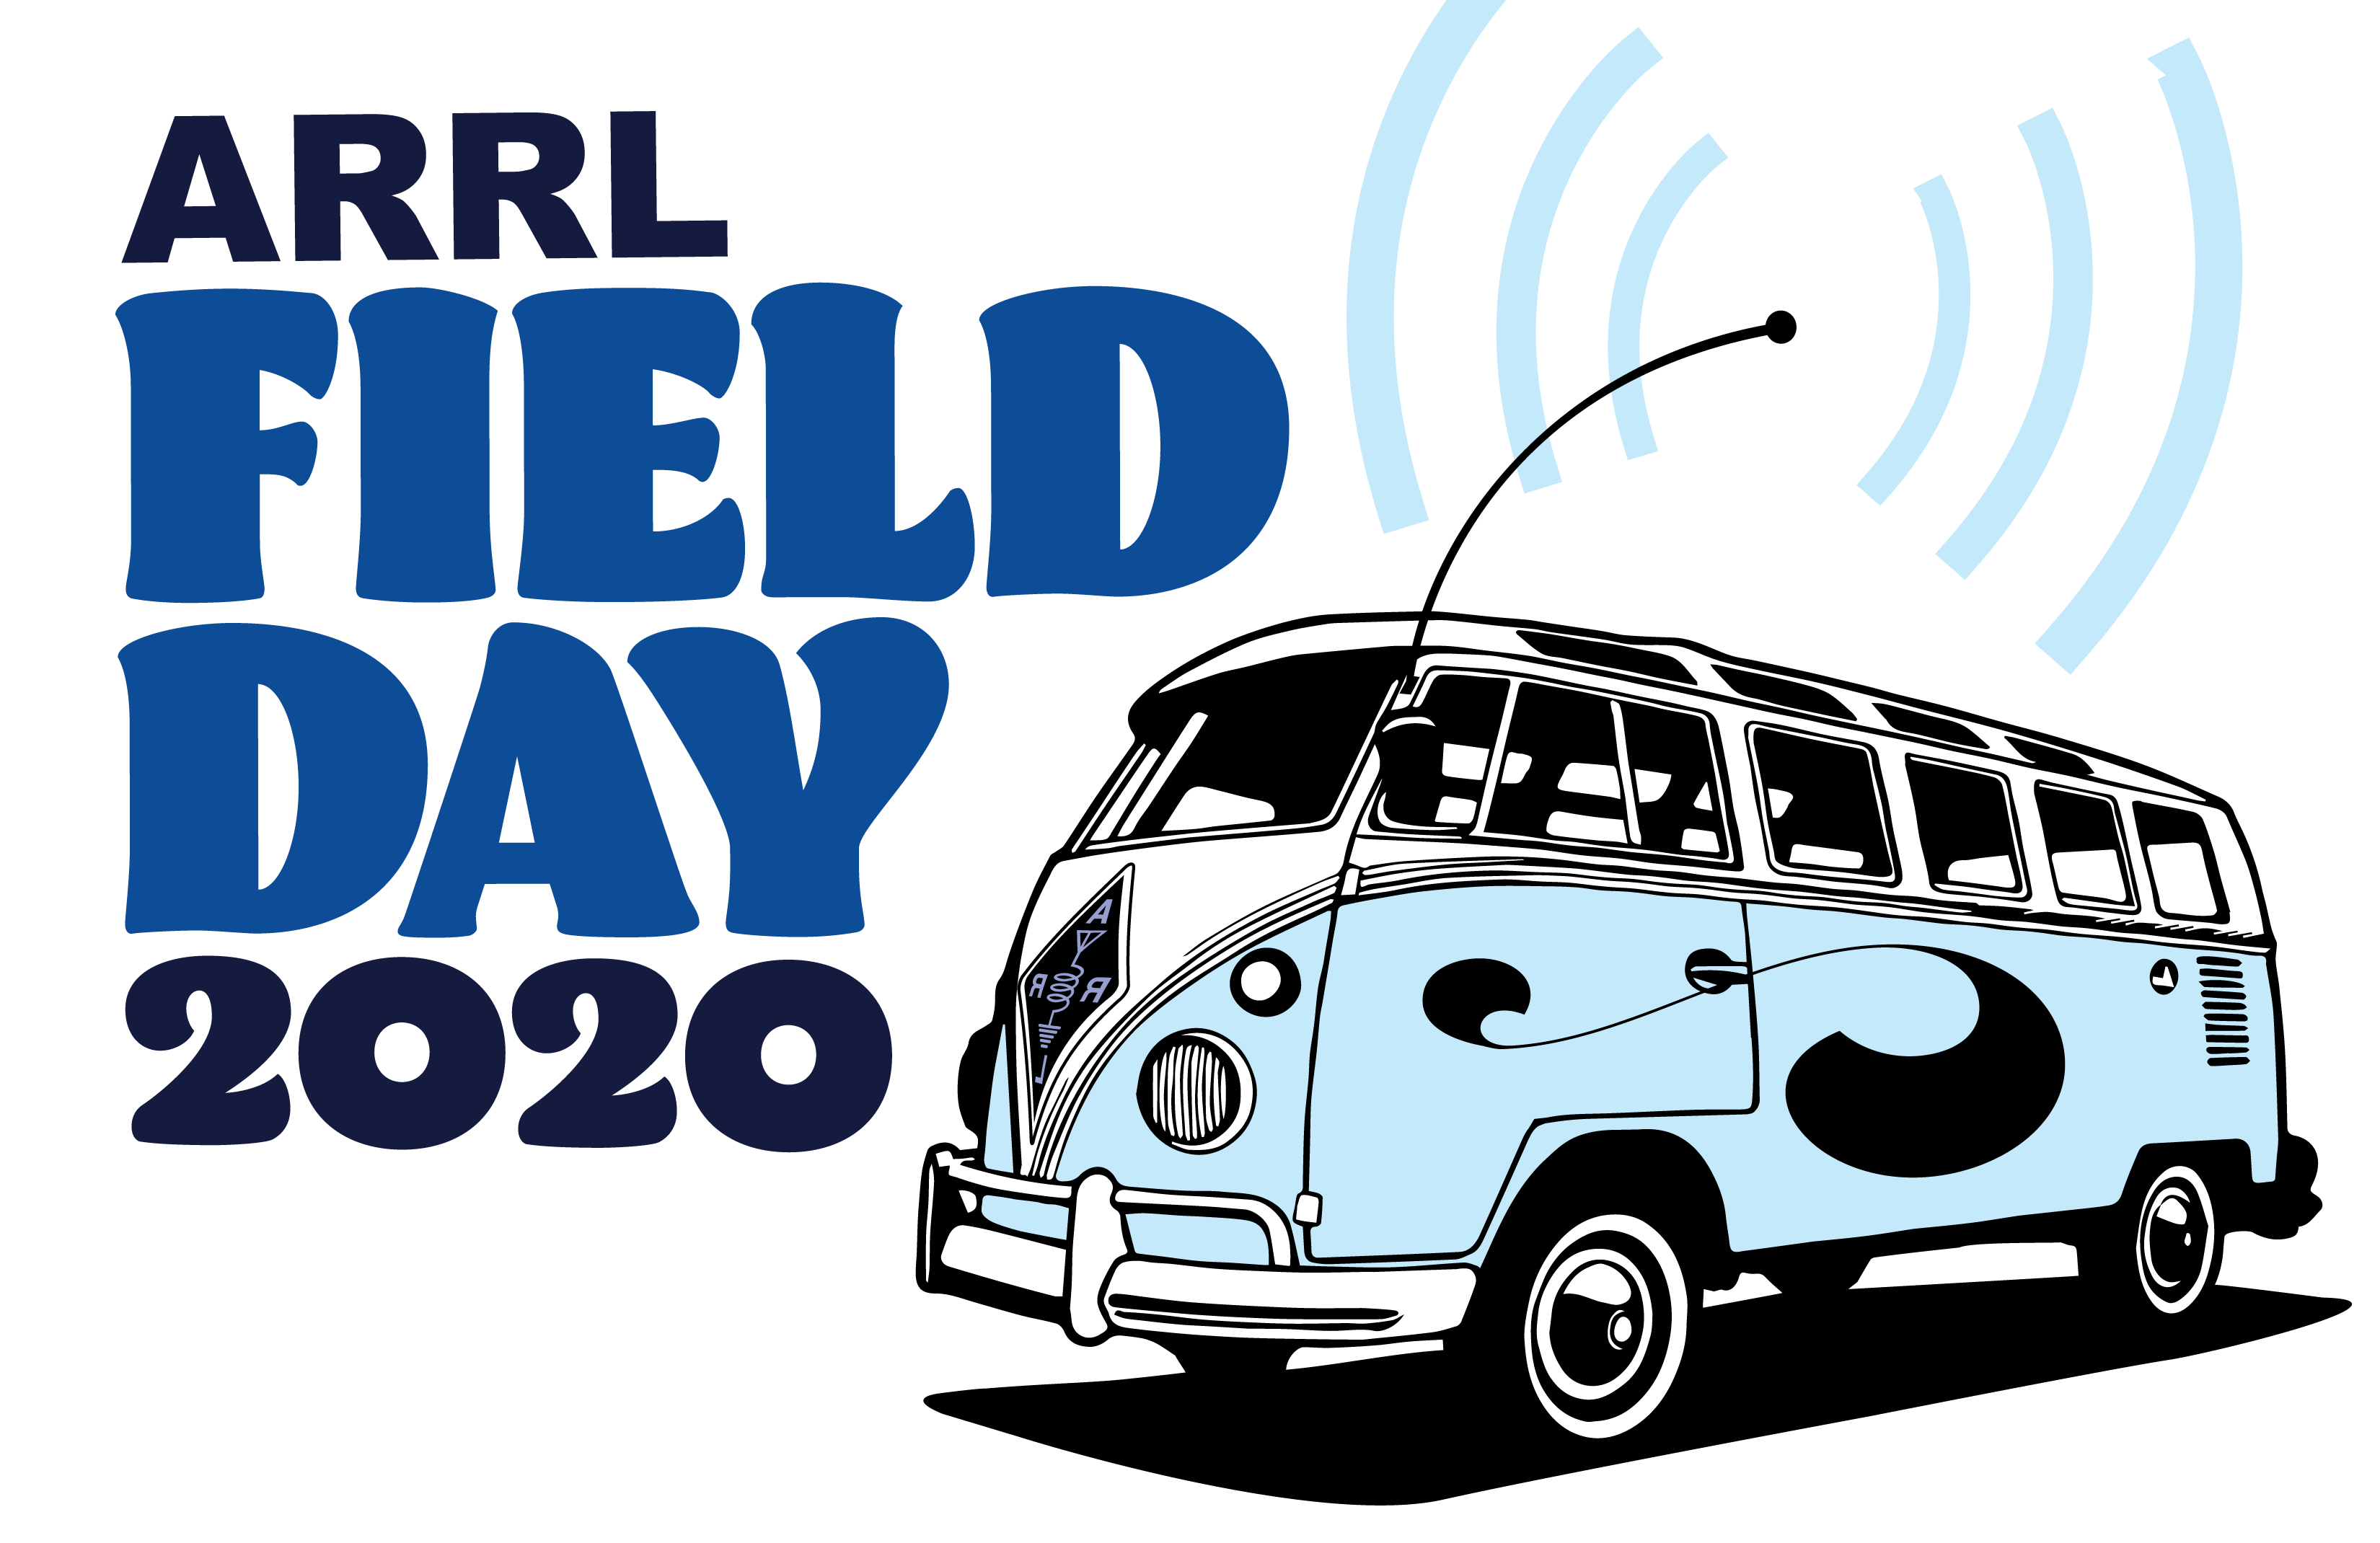 2020 Field Day Poster PNG.png